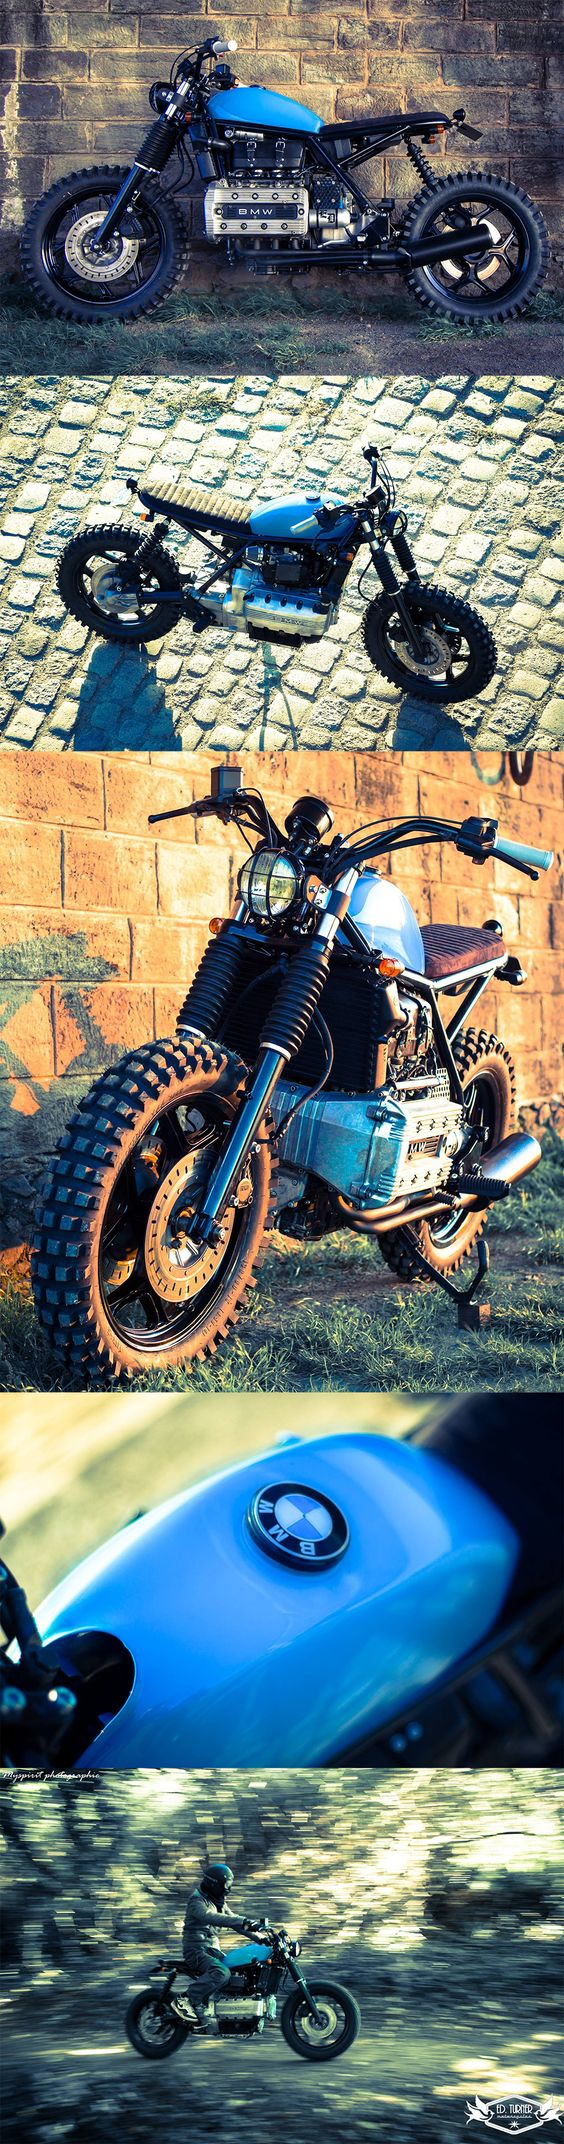 BMW K100 Scrambler by Ed Turner Motorcycles